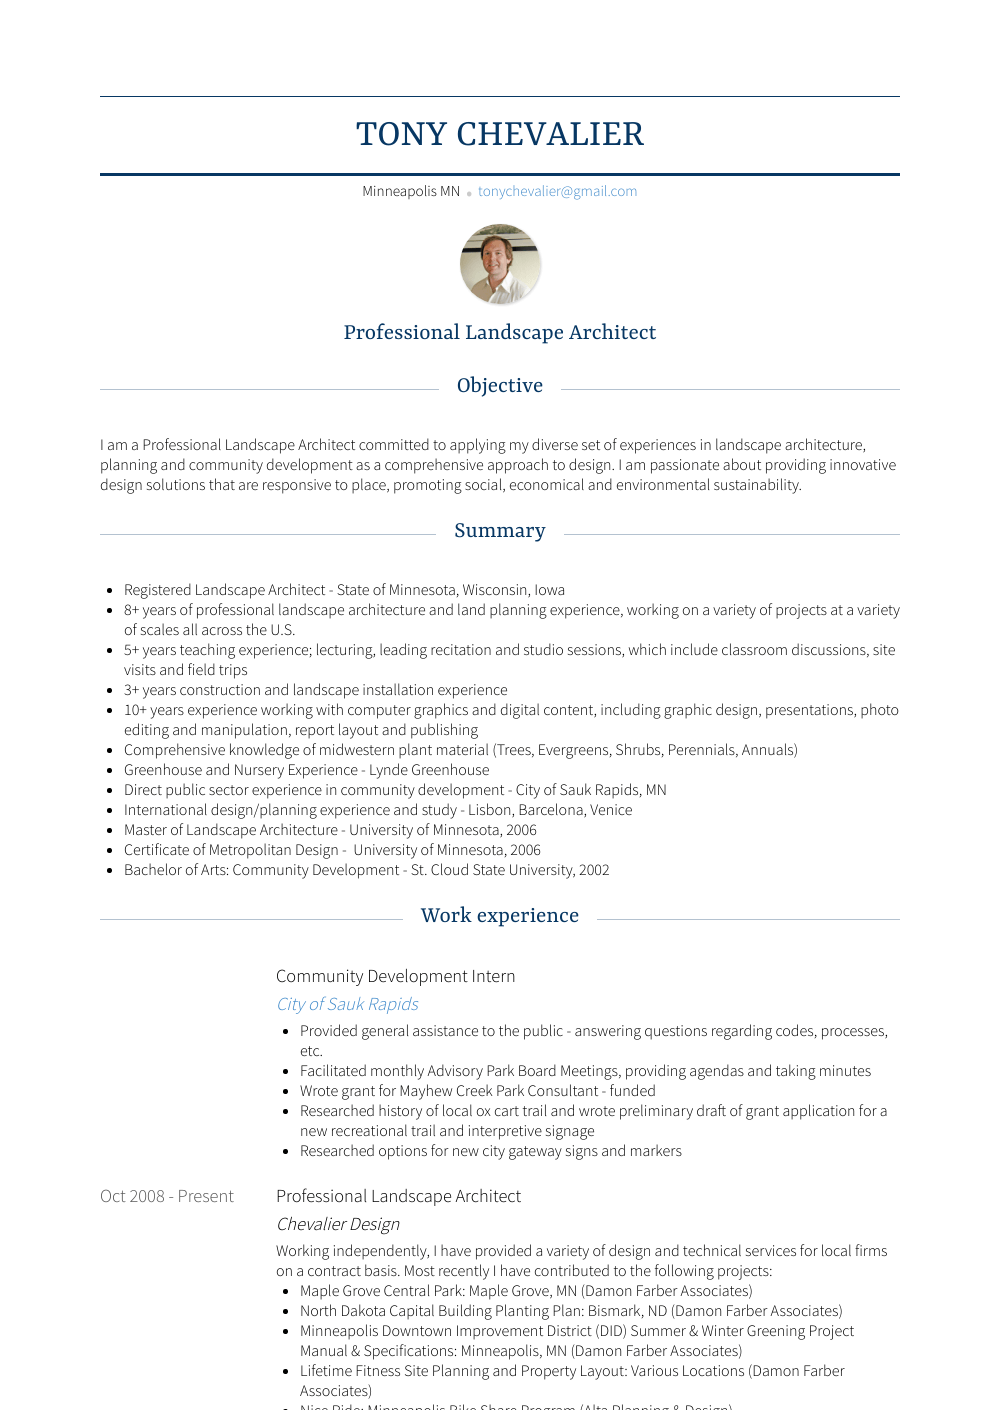 development intern